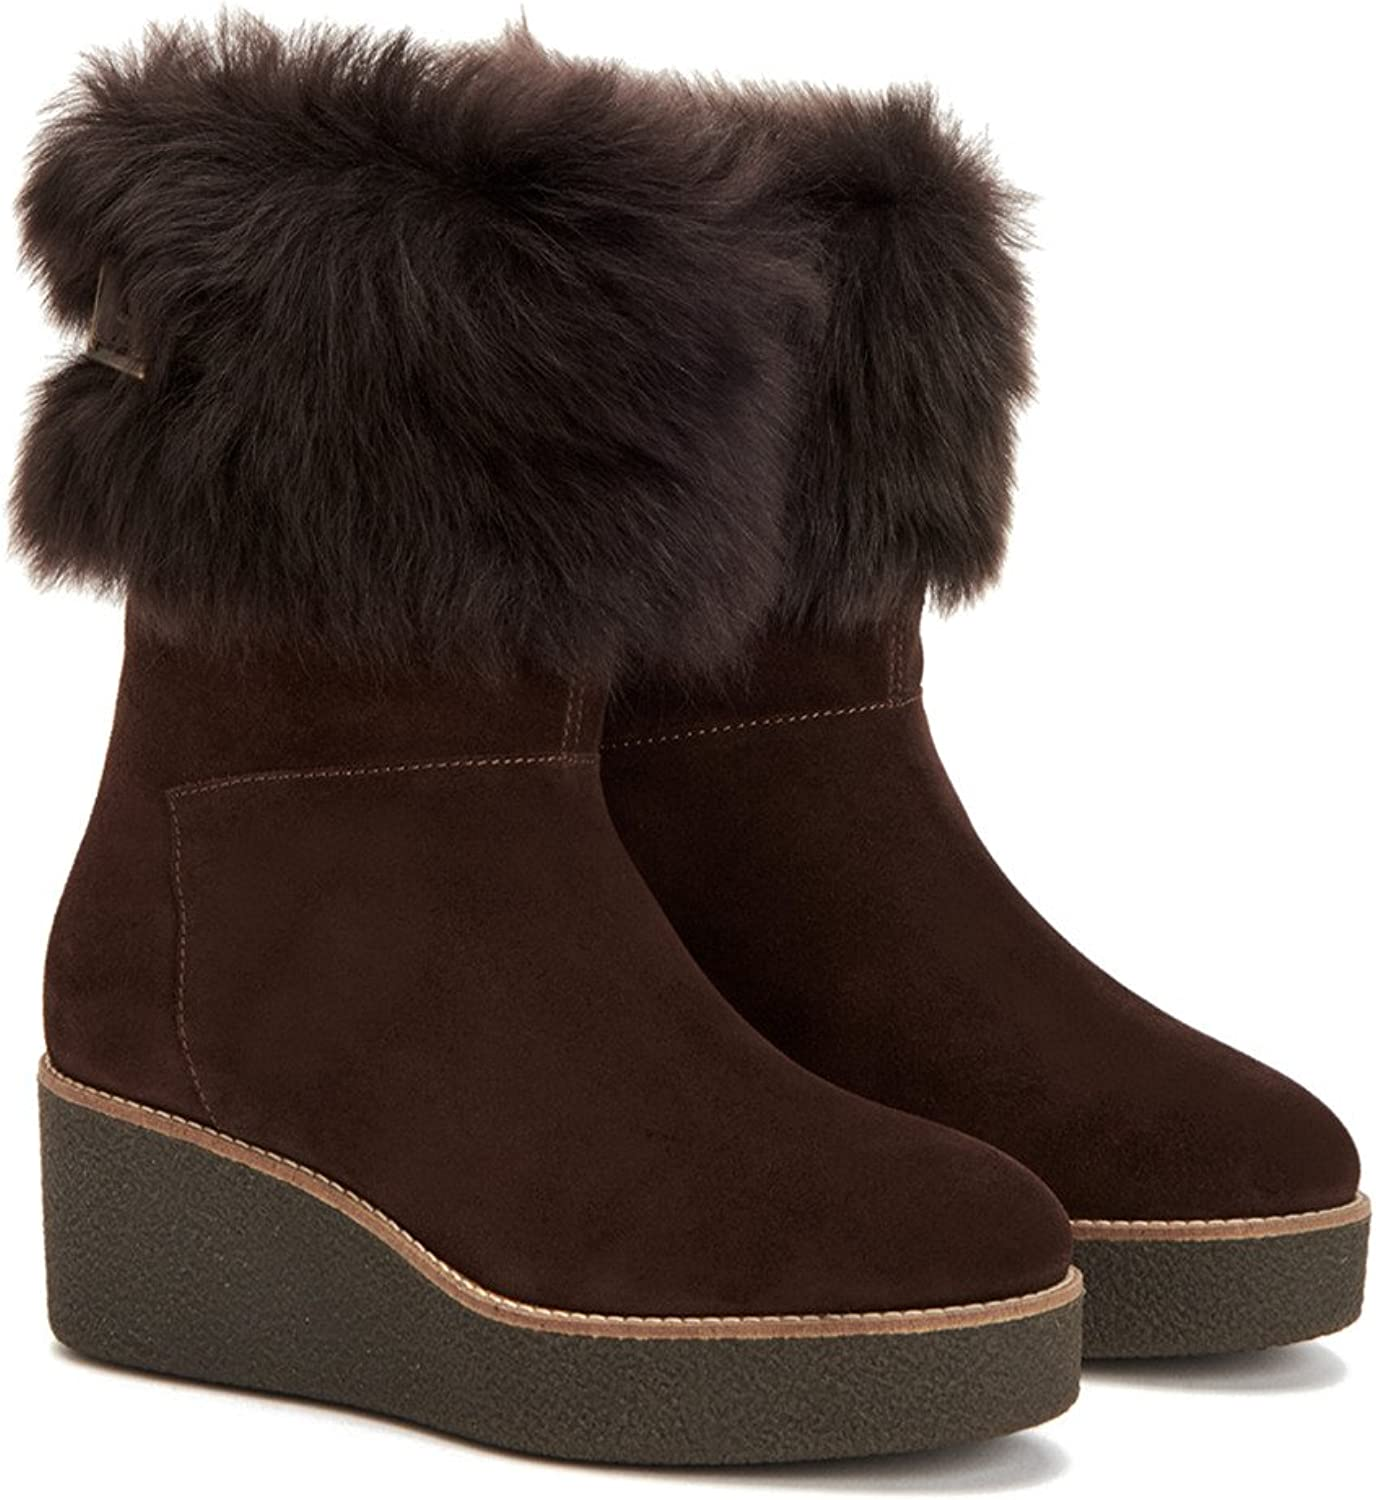 Aquatalia Women's Vallaine Suede Shearling Ankle Boot